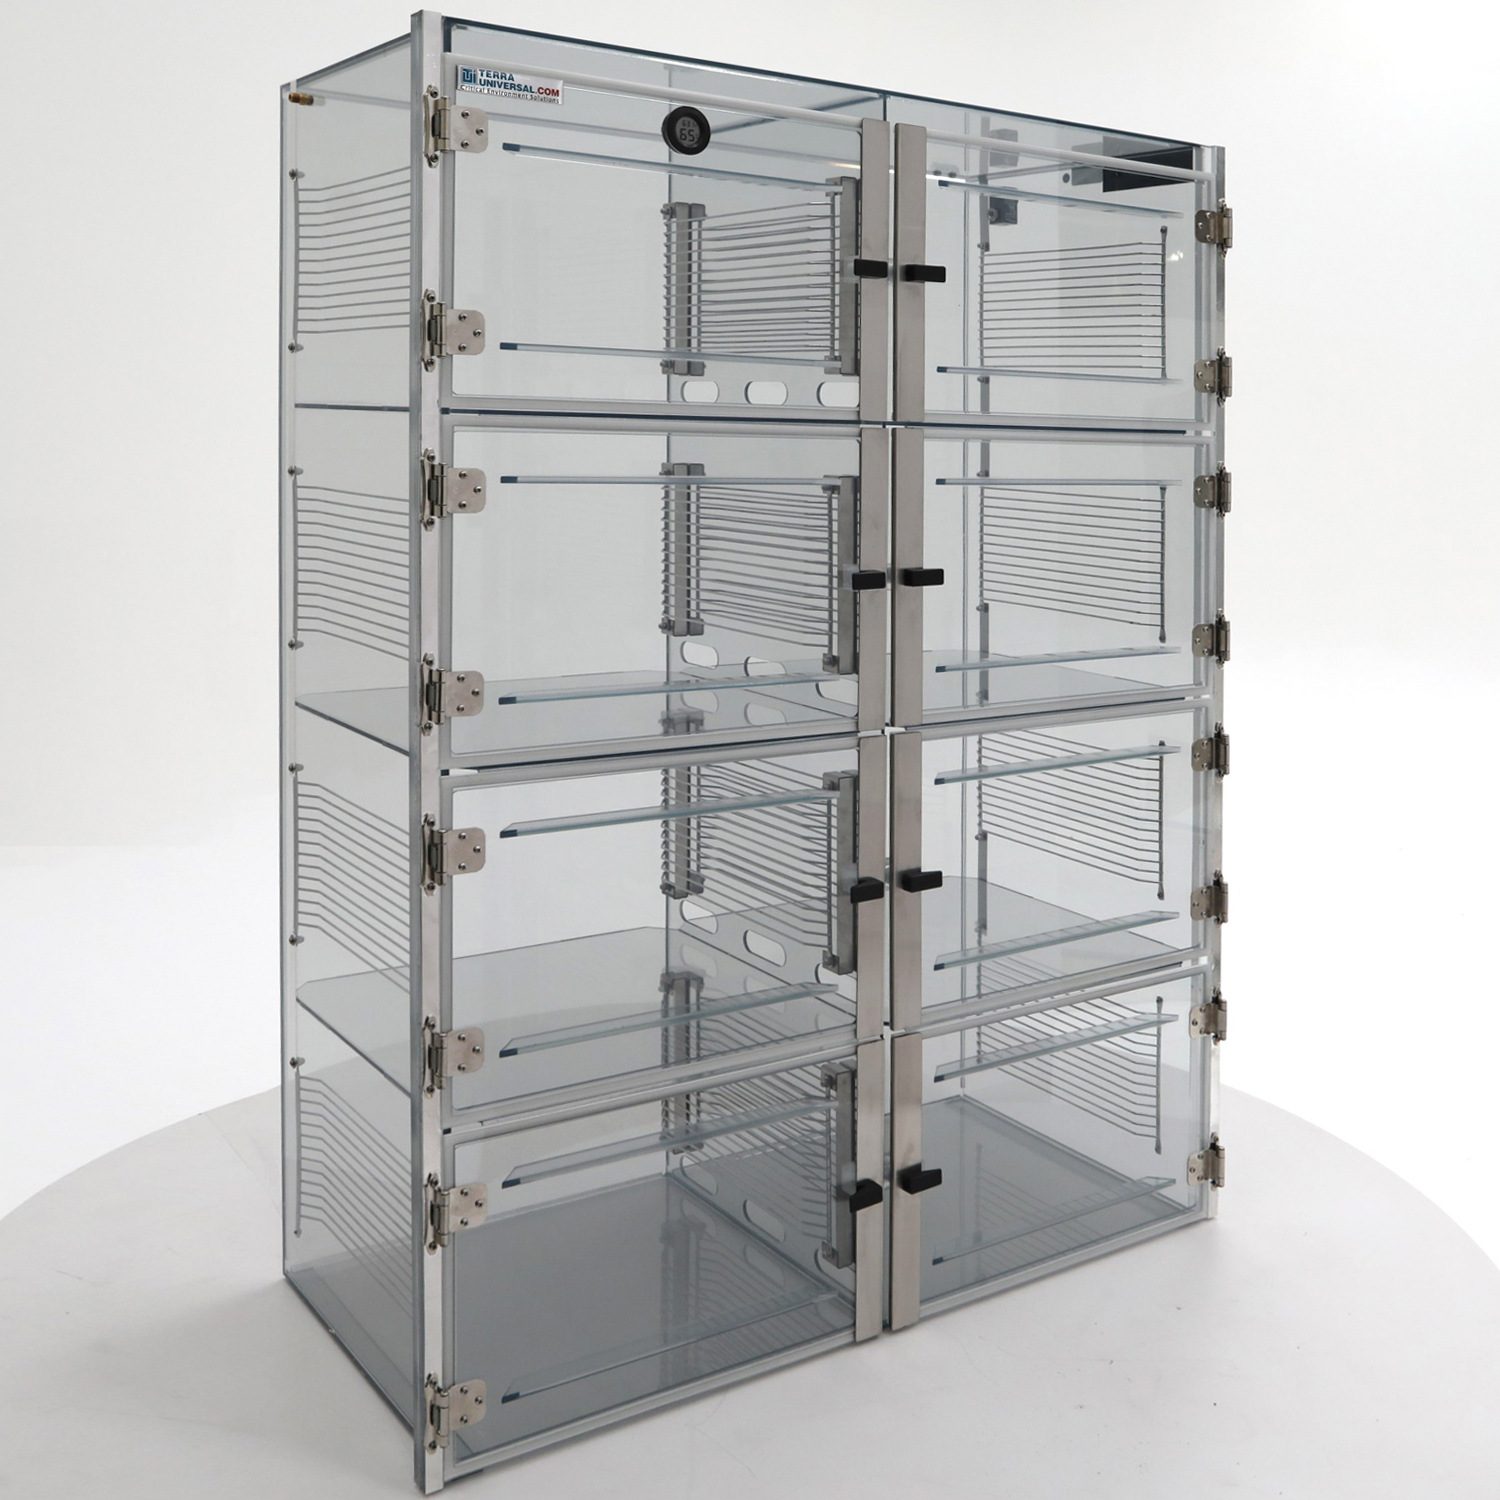 8-Chamber Static-Dissipative PVC ValuLine ES Desiccator Cabinet